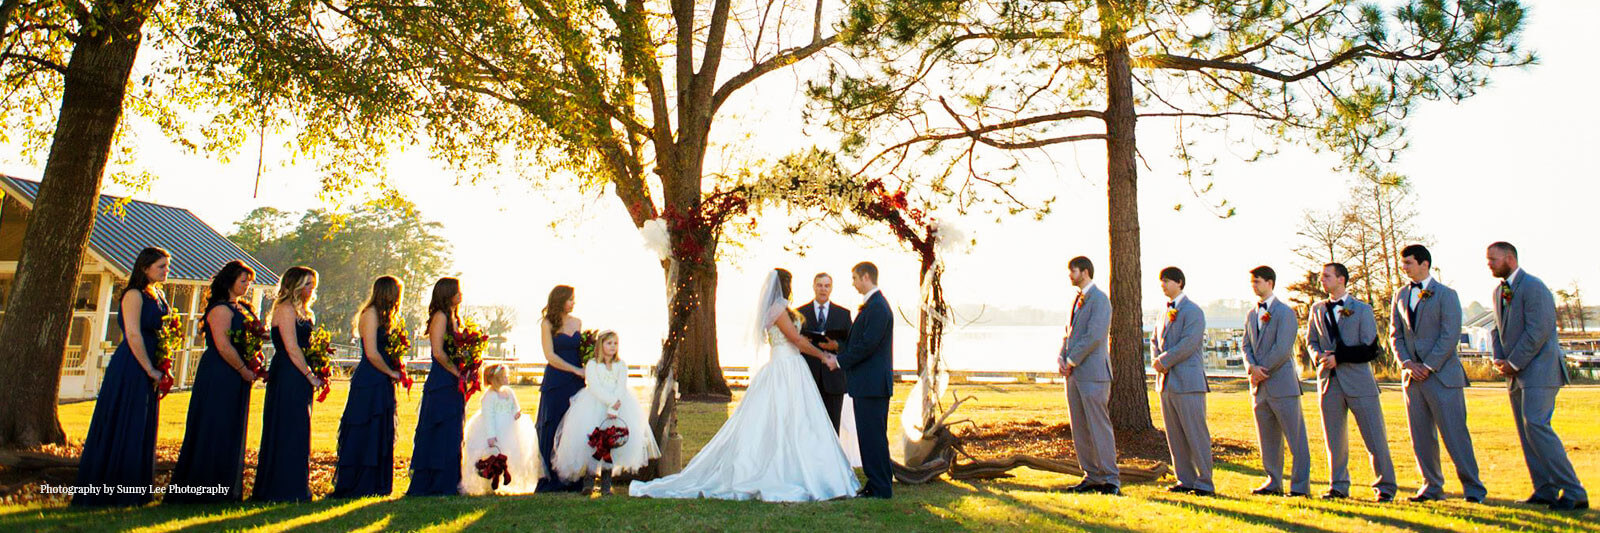 Lake merwin wedding